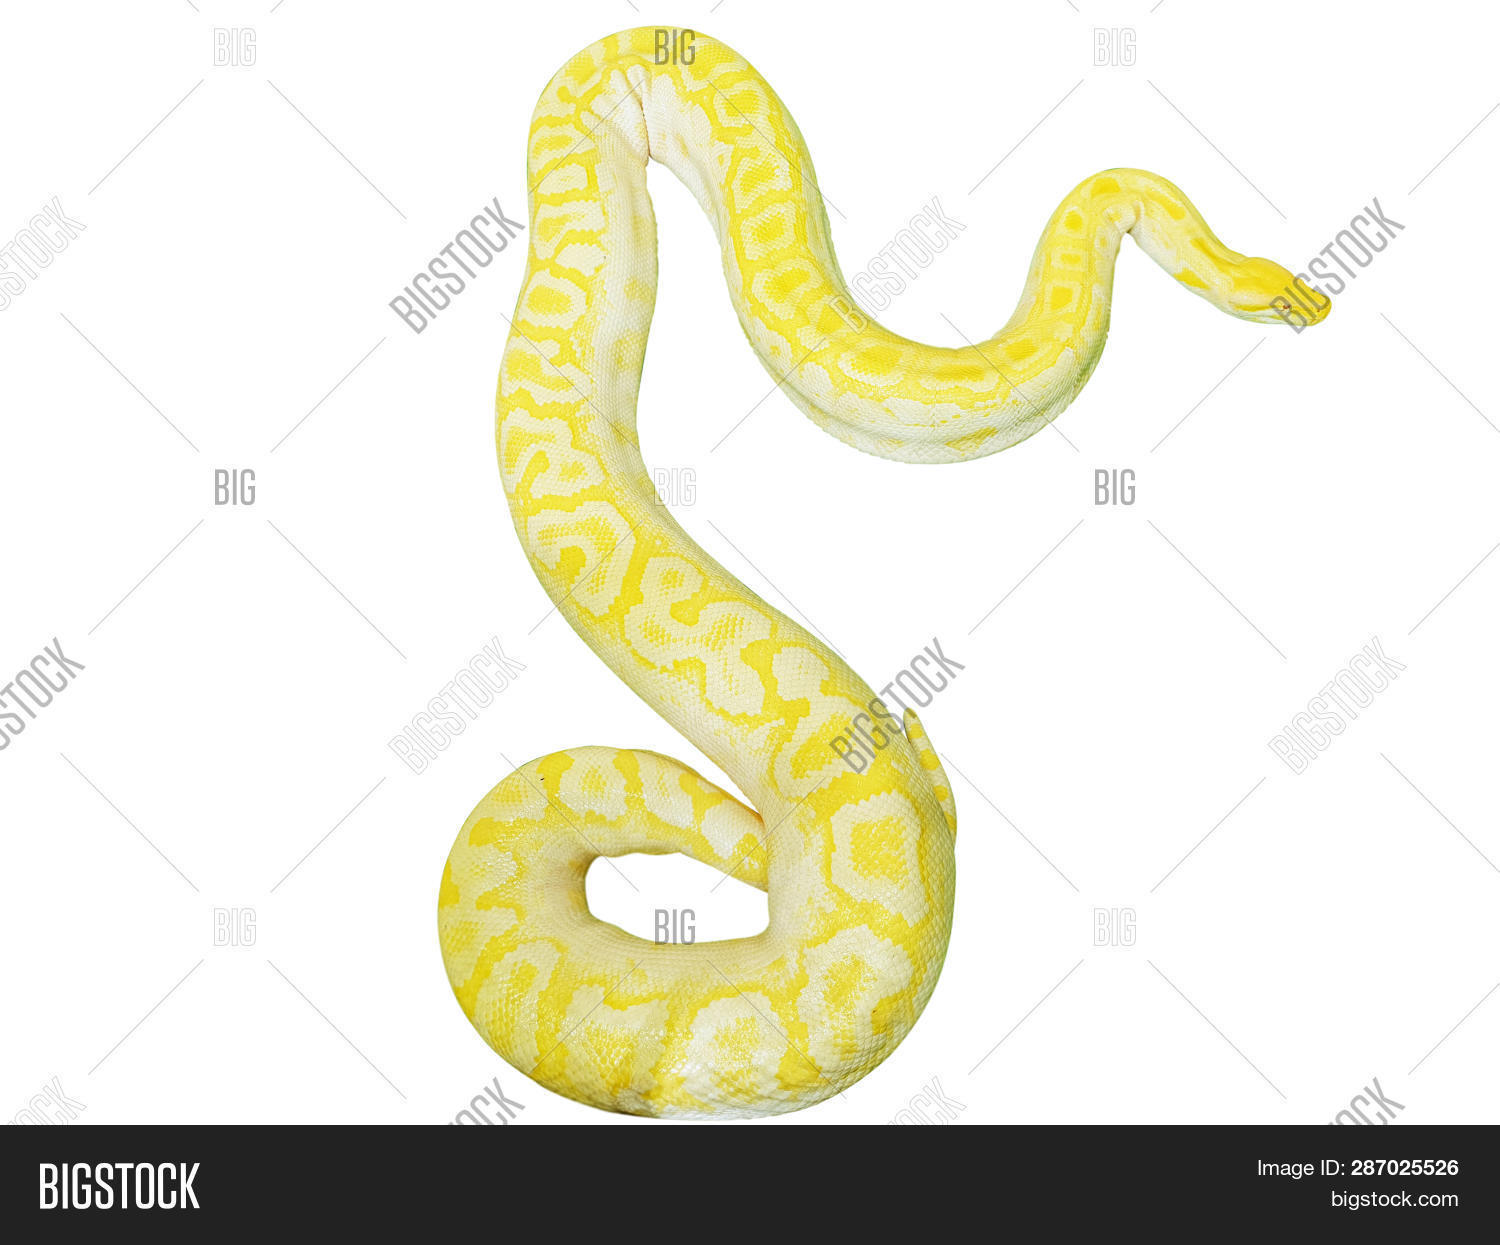 Giant Gold Boa Snake Image & Photo (Free Trial) | Bigstock